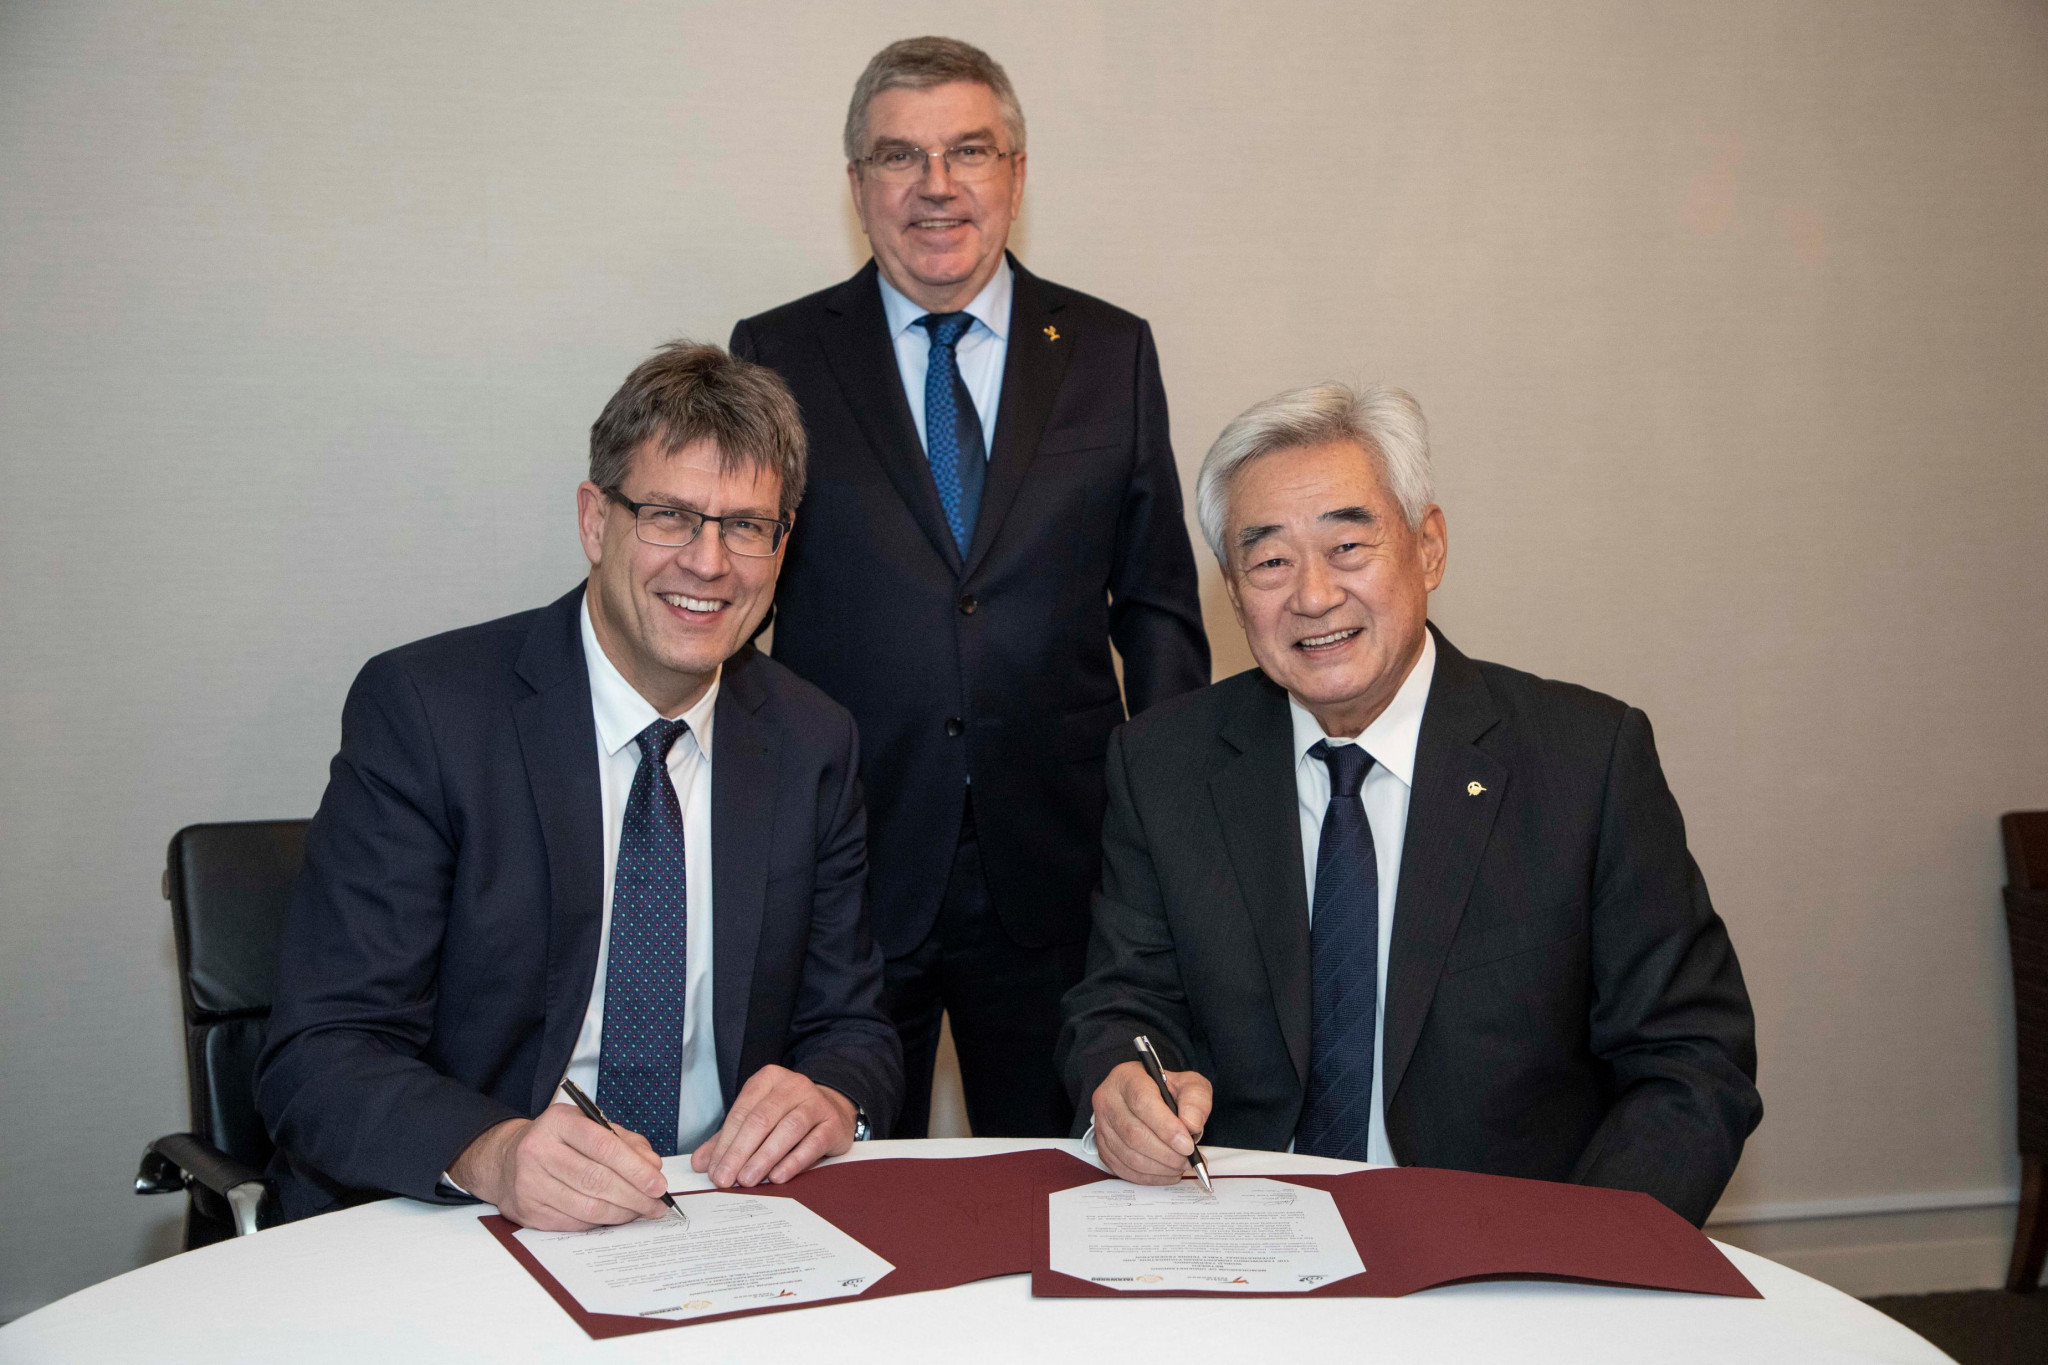 The Taekwondo Humanitarian Foundation and International Table Tennis Federation have agreed to work together to promote peace through sport ©World Taekwondo